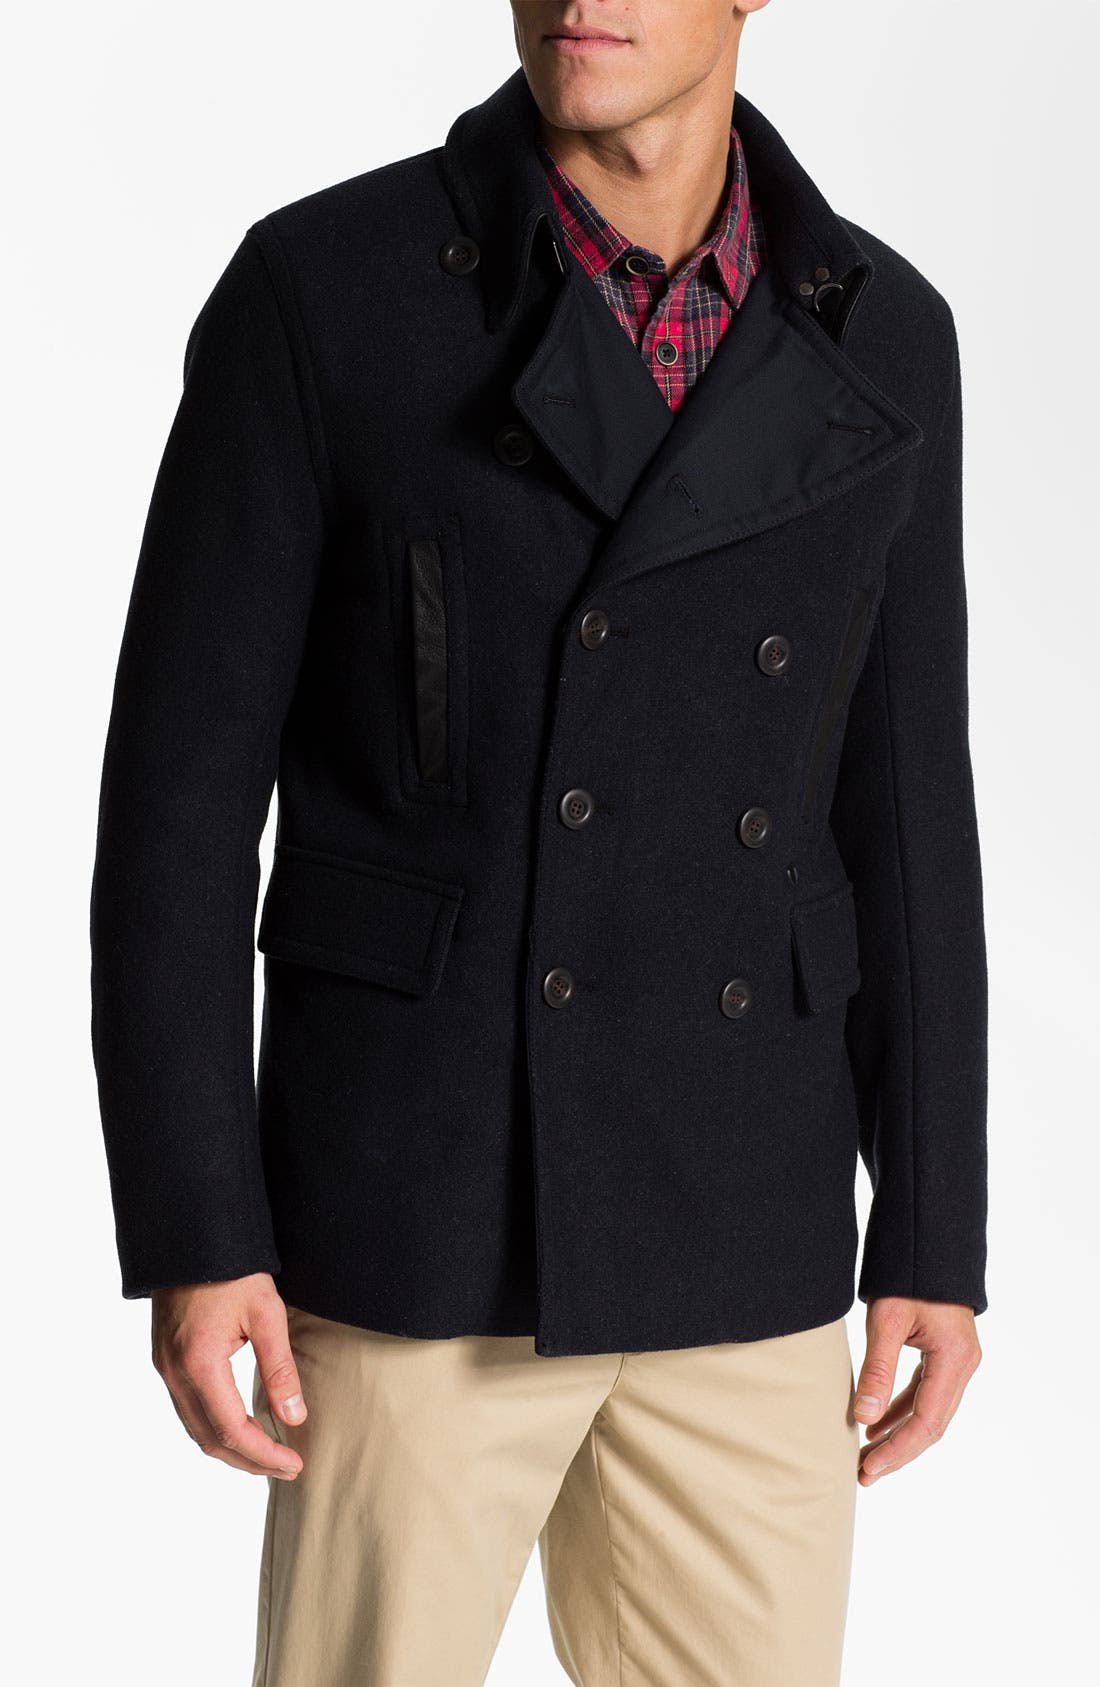 Alternate Image 1 Selected - PLECTRUM by Ben Sherman Double Breasted Peacoat